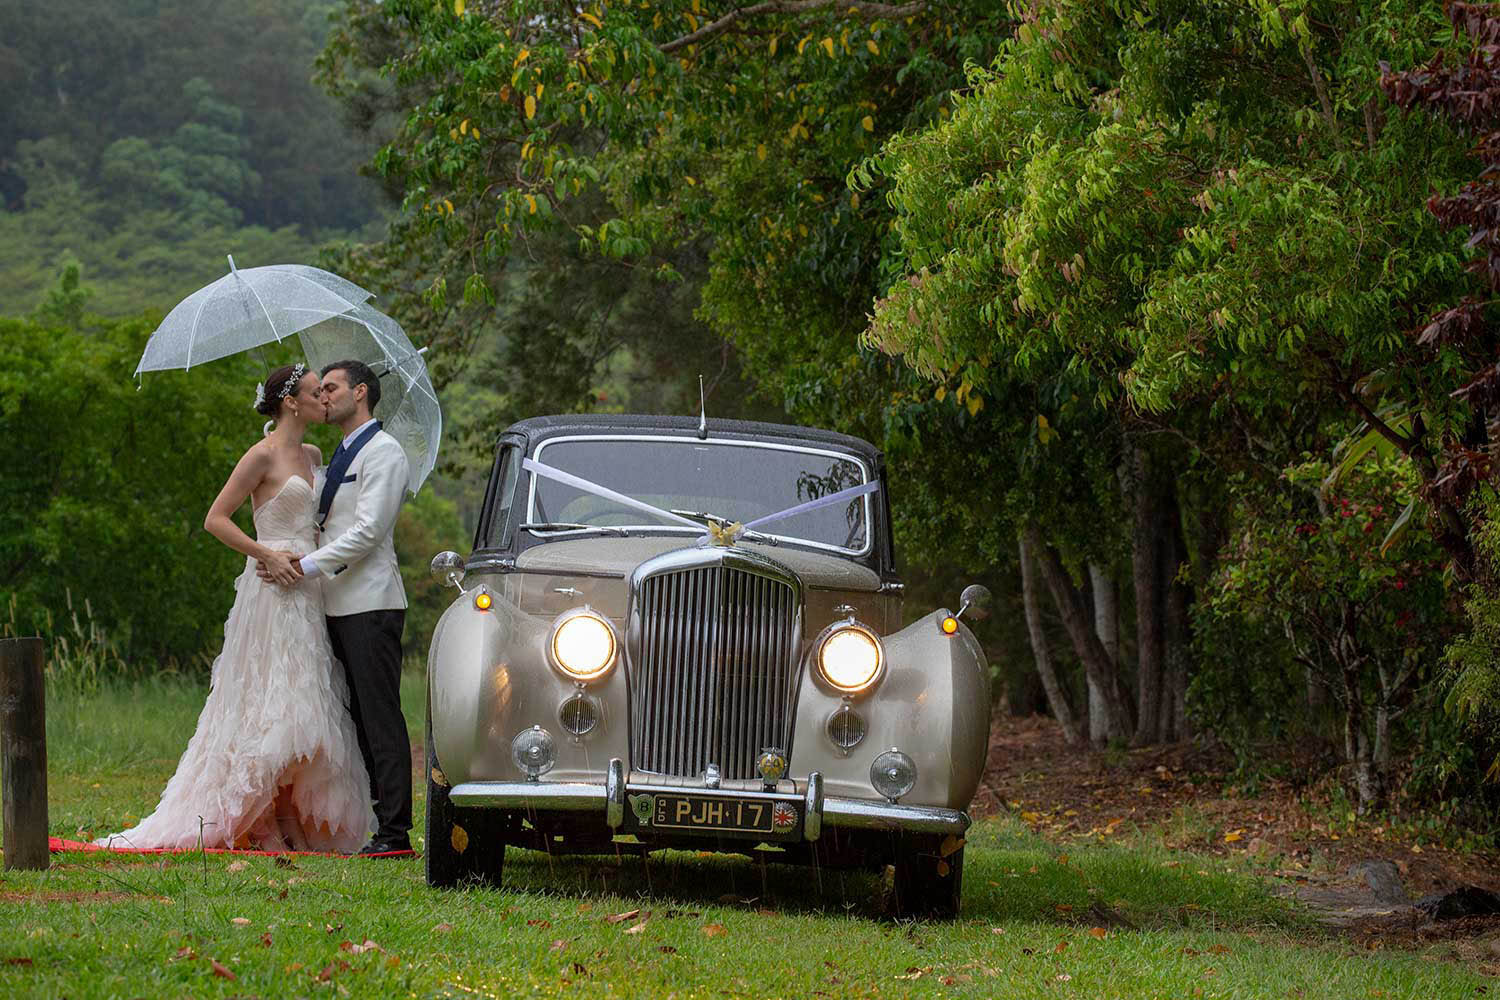 The Rocks Yandina wedding venue